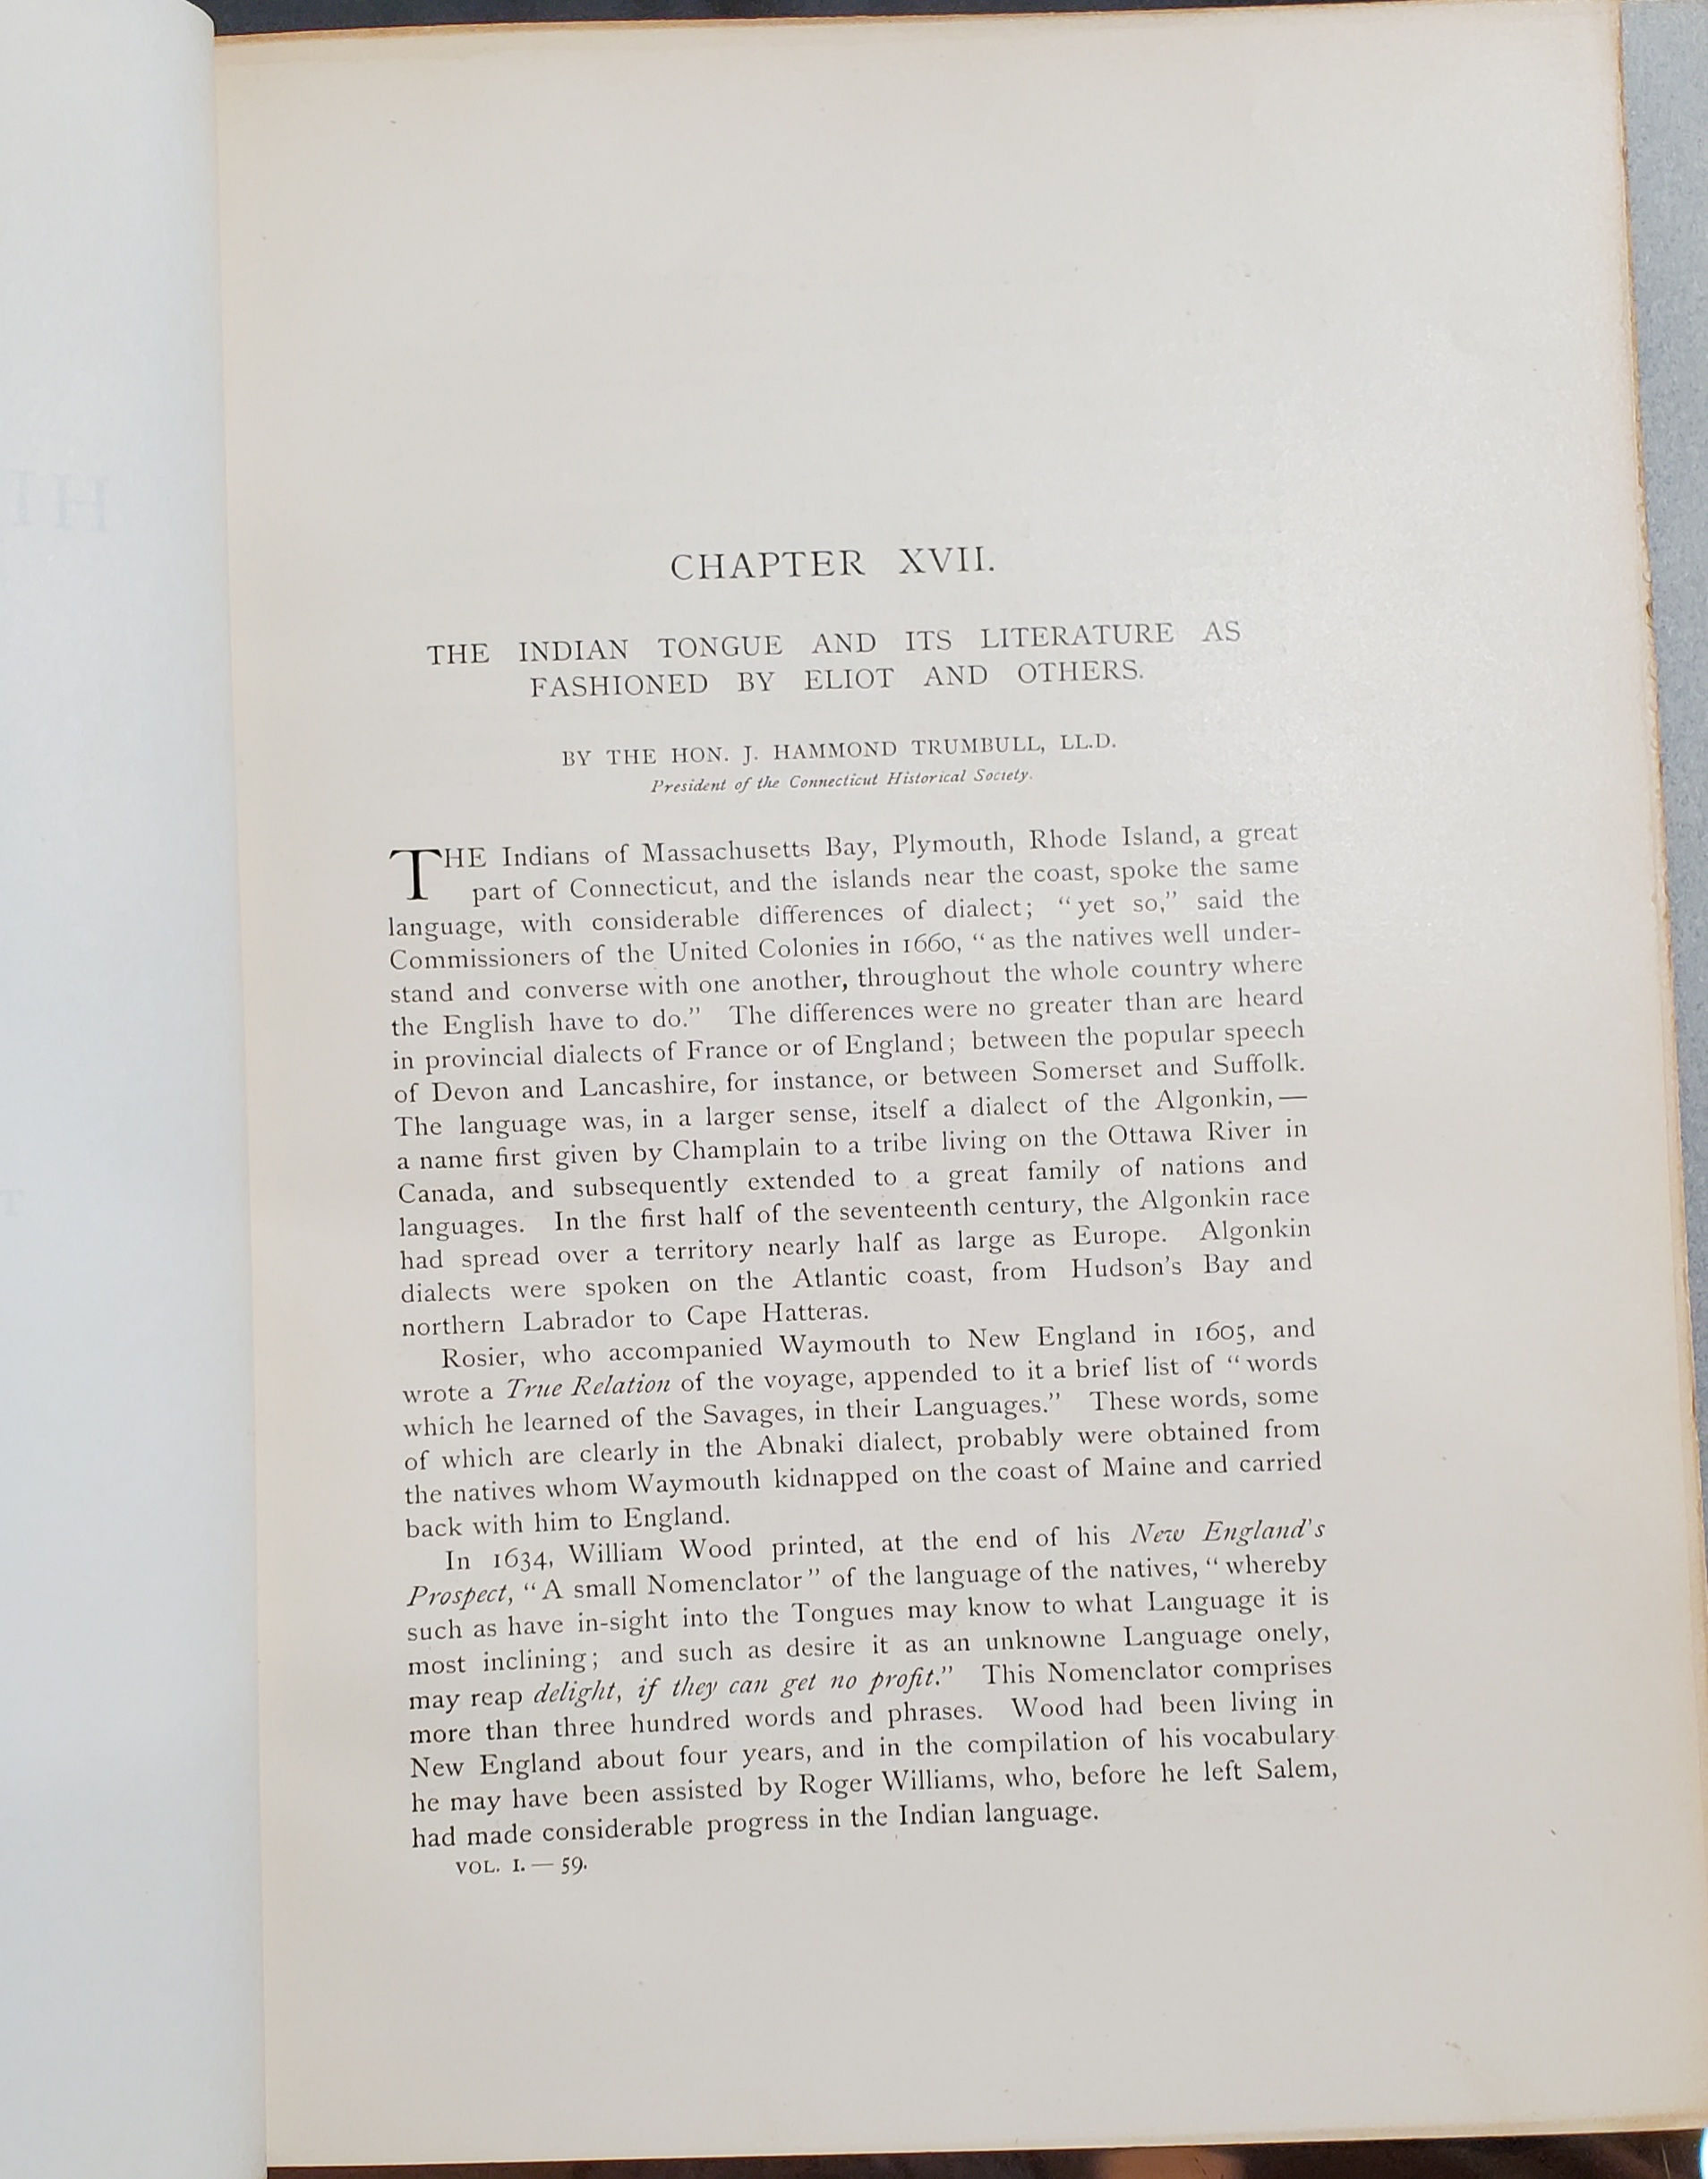 First page of